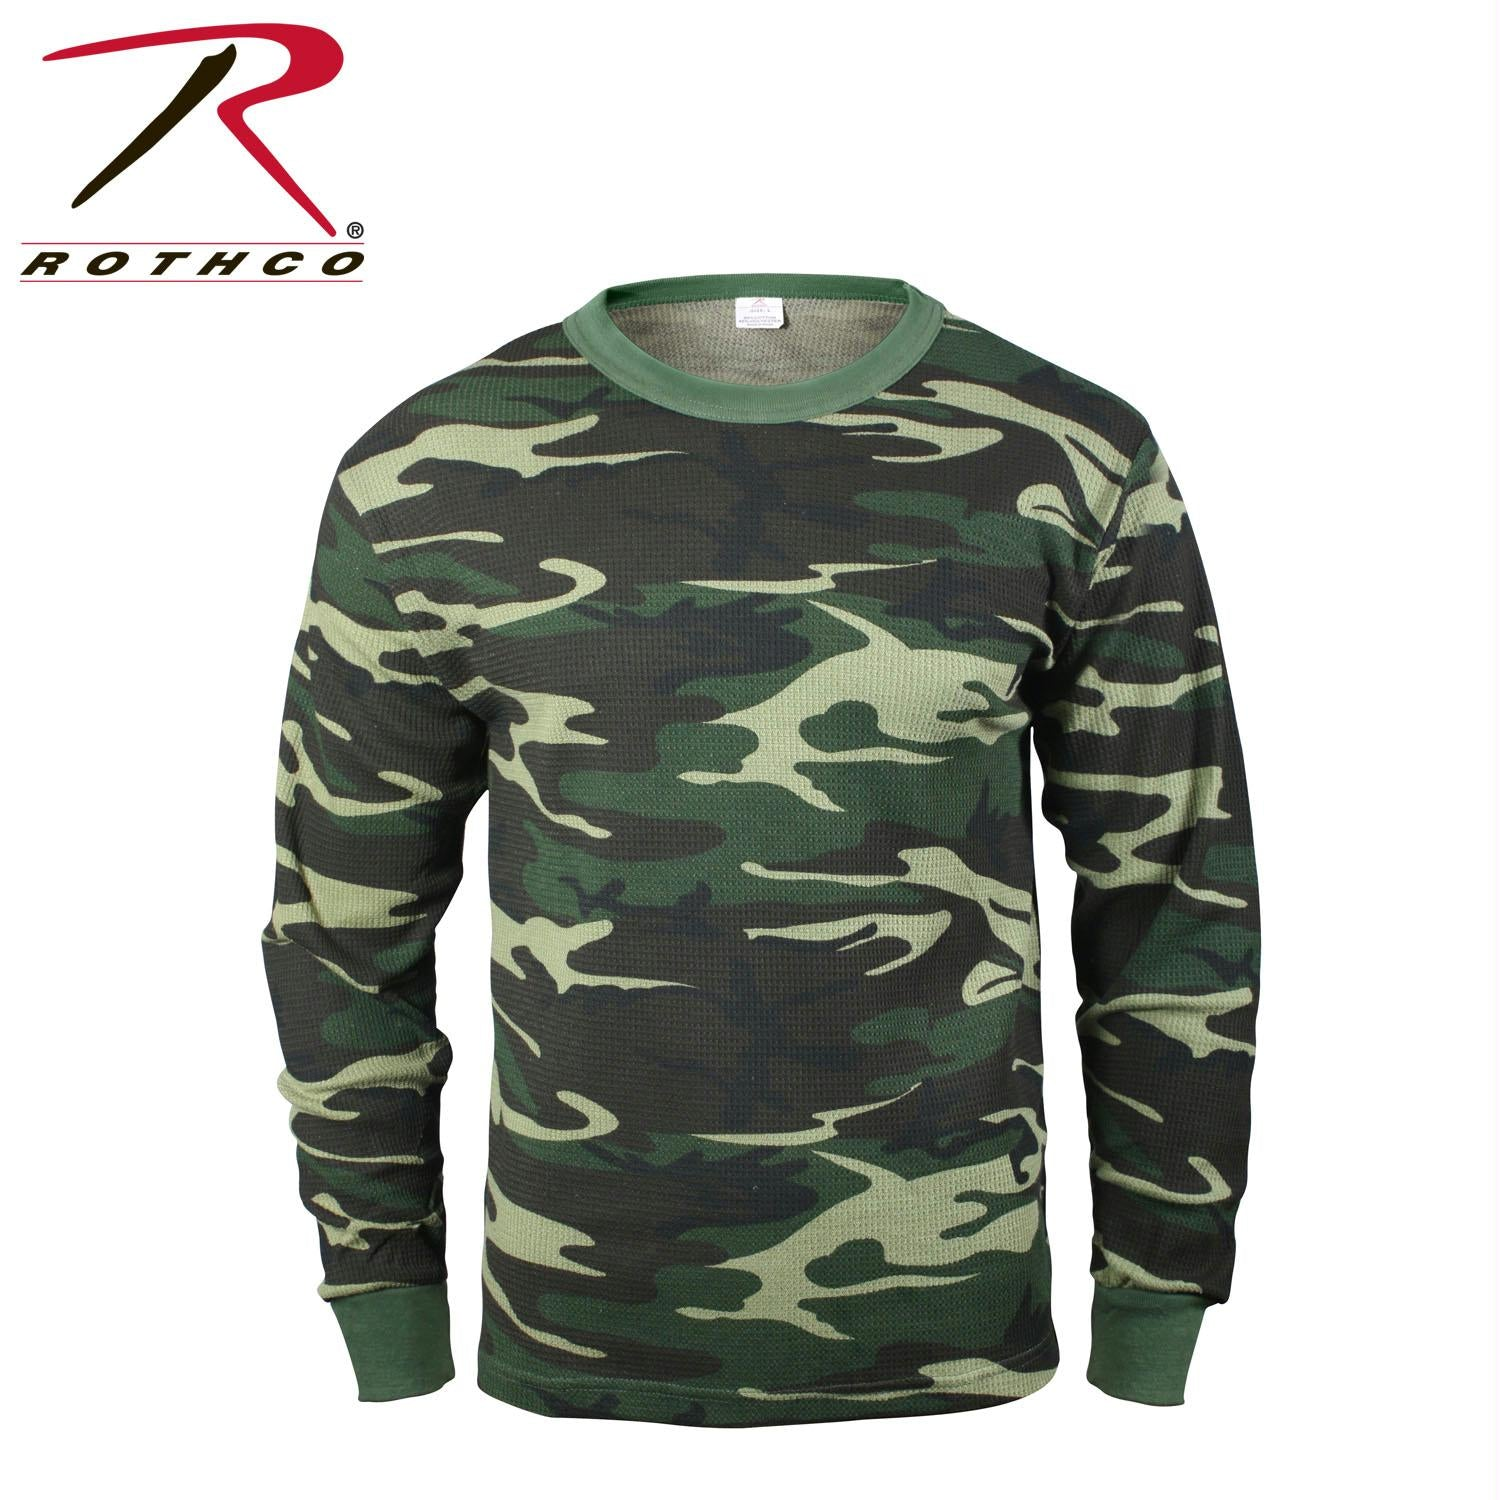 Rothco Thermal Knit Underwear Top - Woodland Camo / M